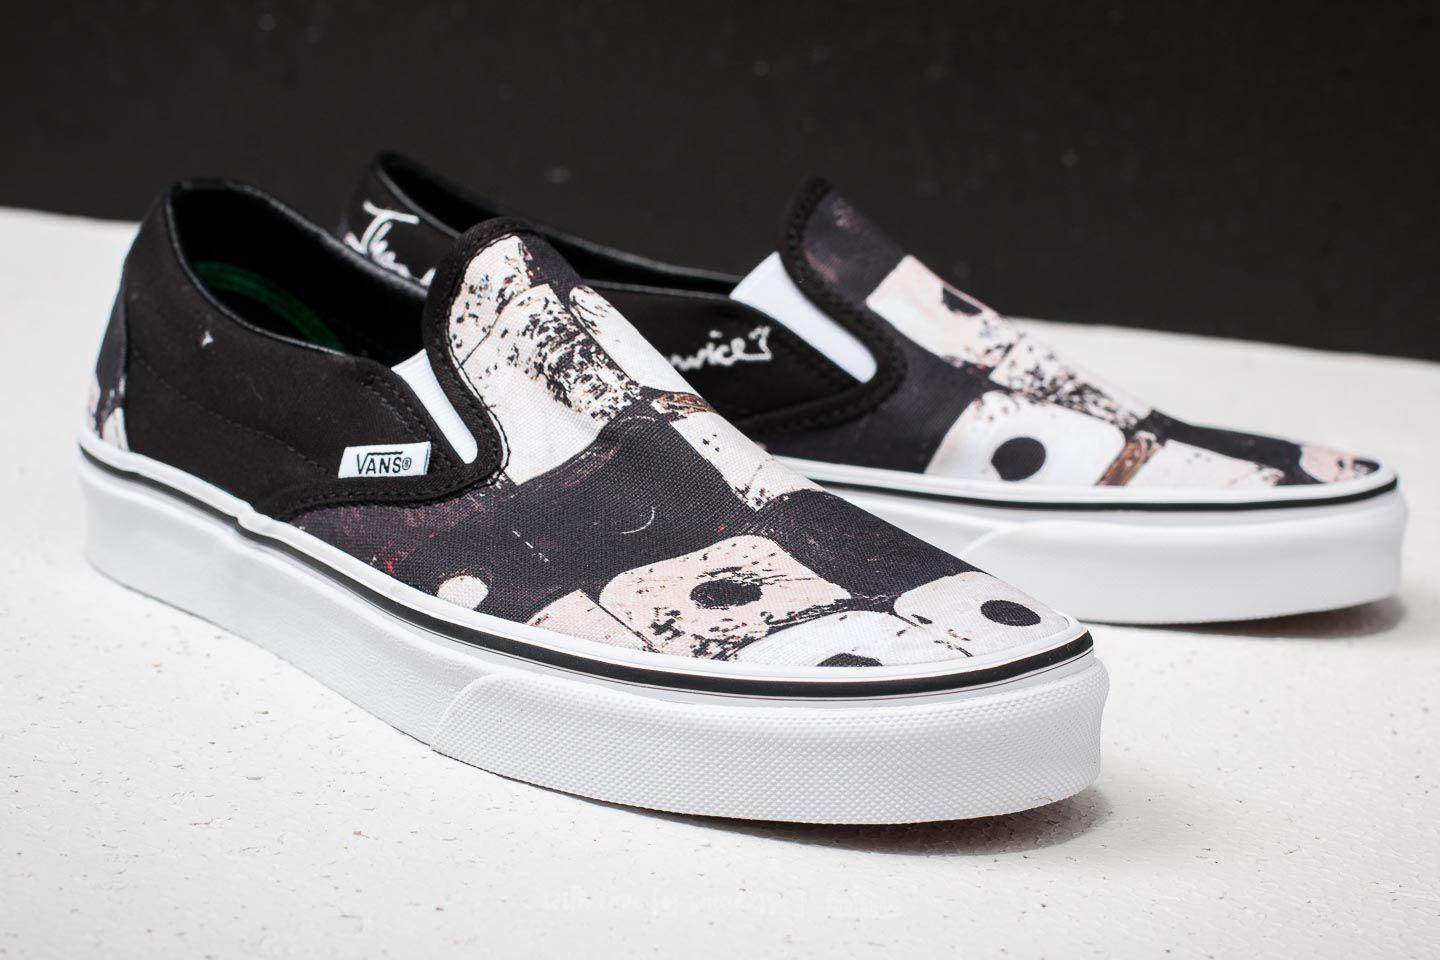 470a8cadd2d Lyst - Vans Classic Slip-on (a Tribe Called Quest) Black in Black ...